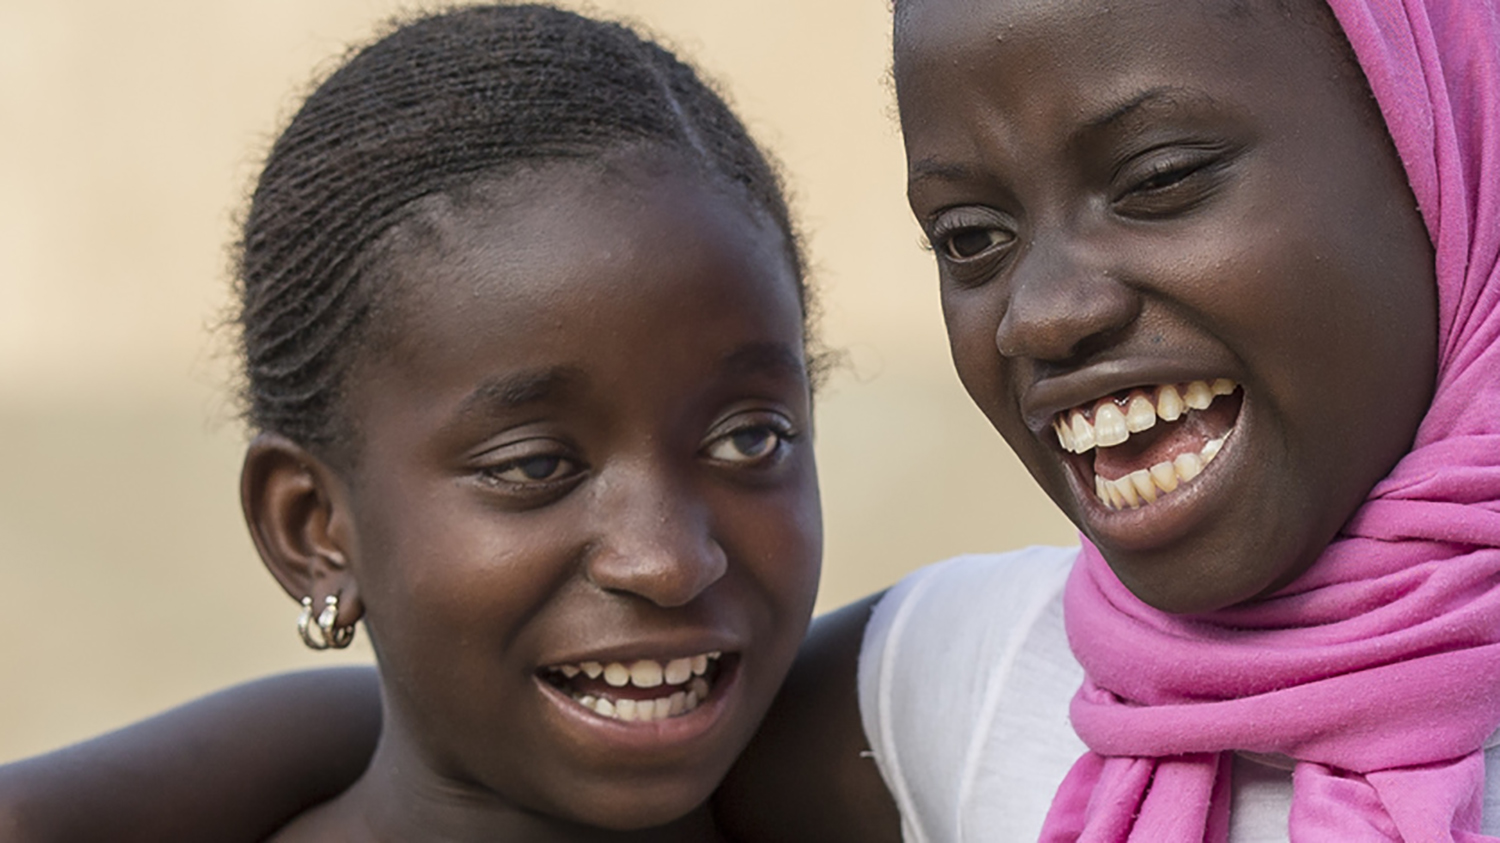 Two girls with visual impairments smile as they embrace each other.